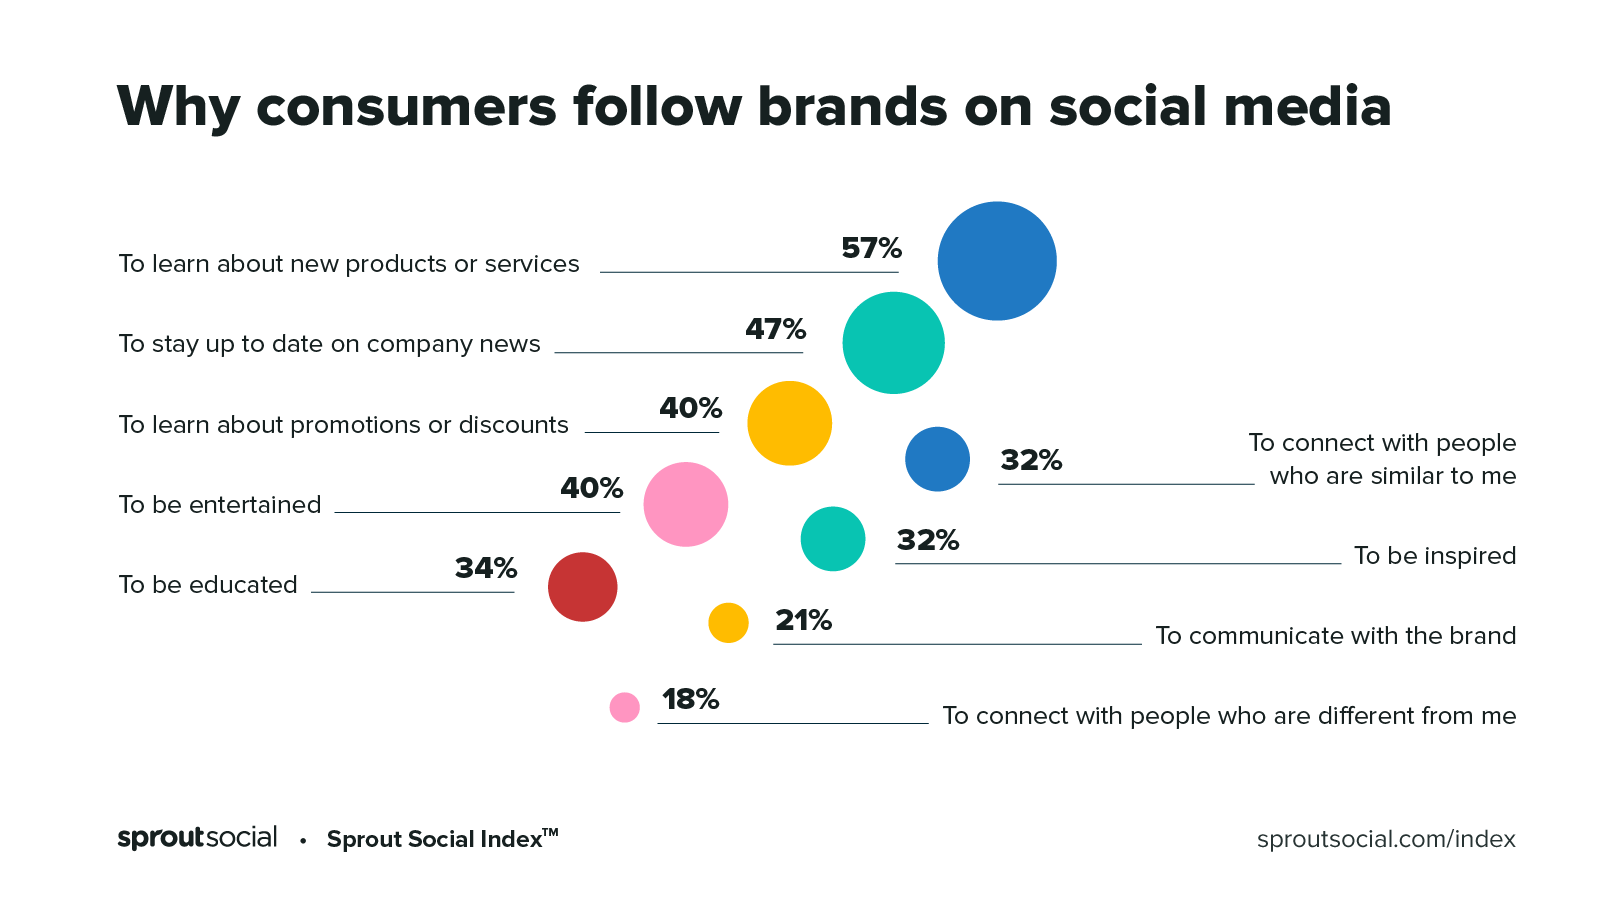 Reasons consumers follow brands - Index 2020